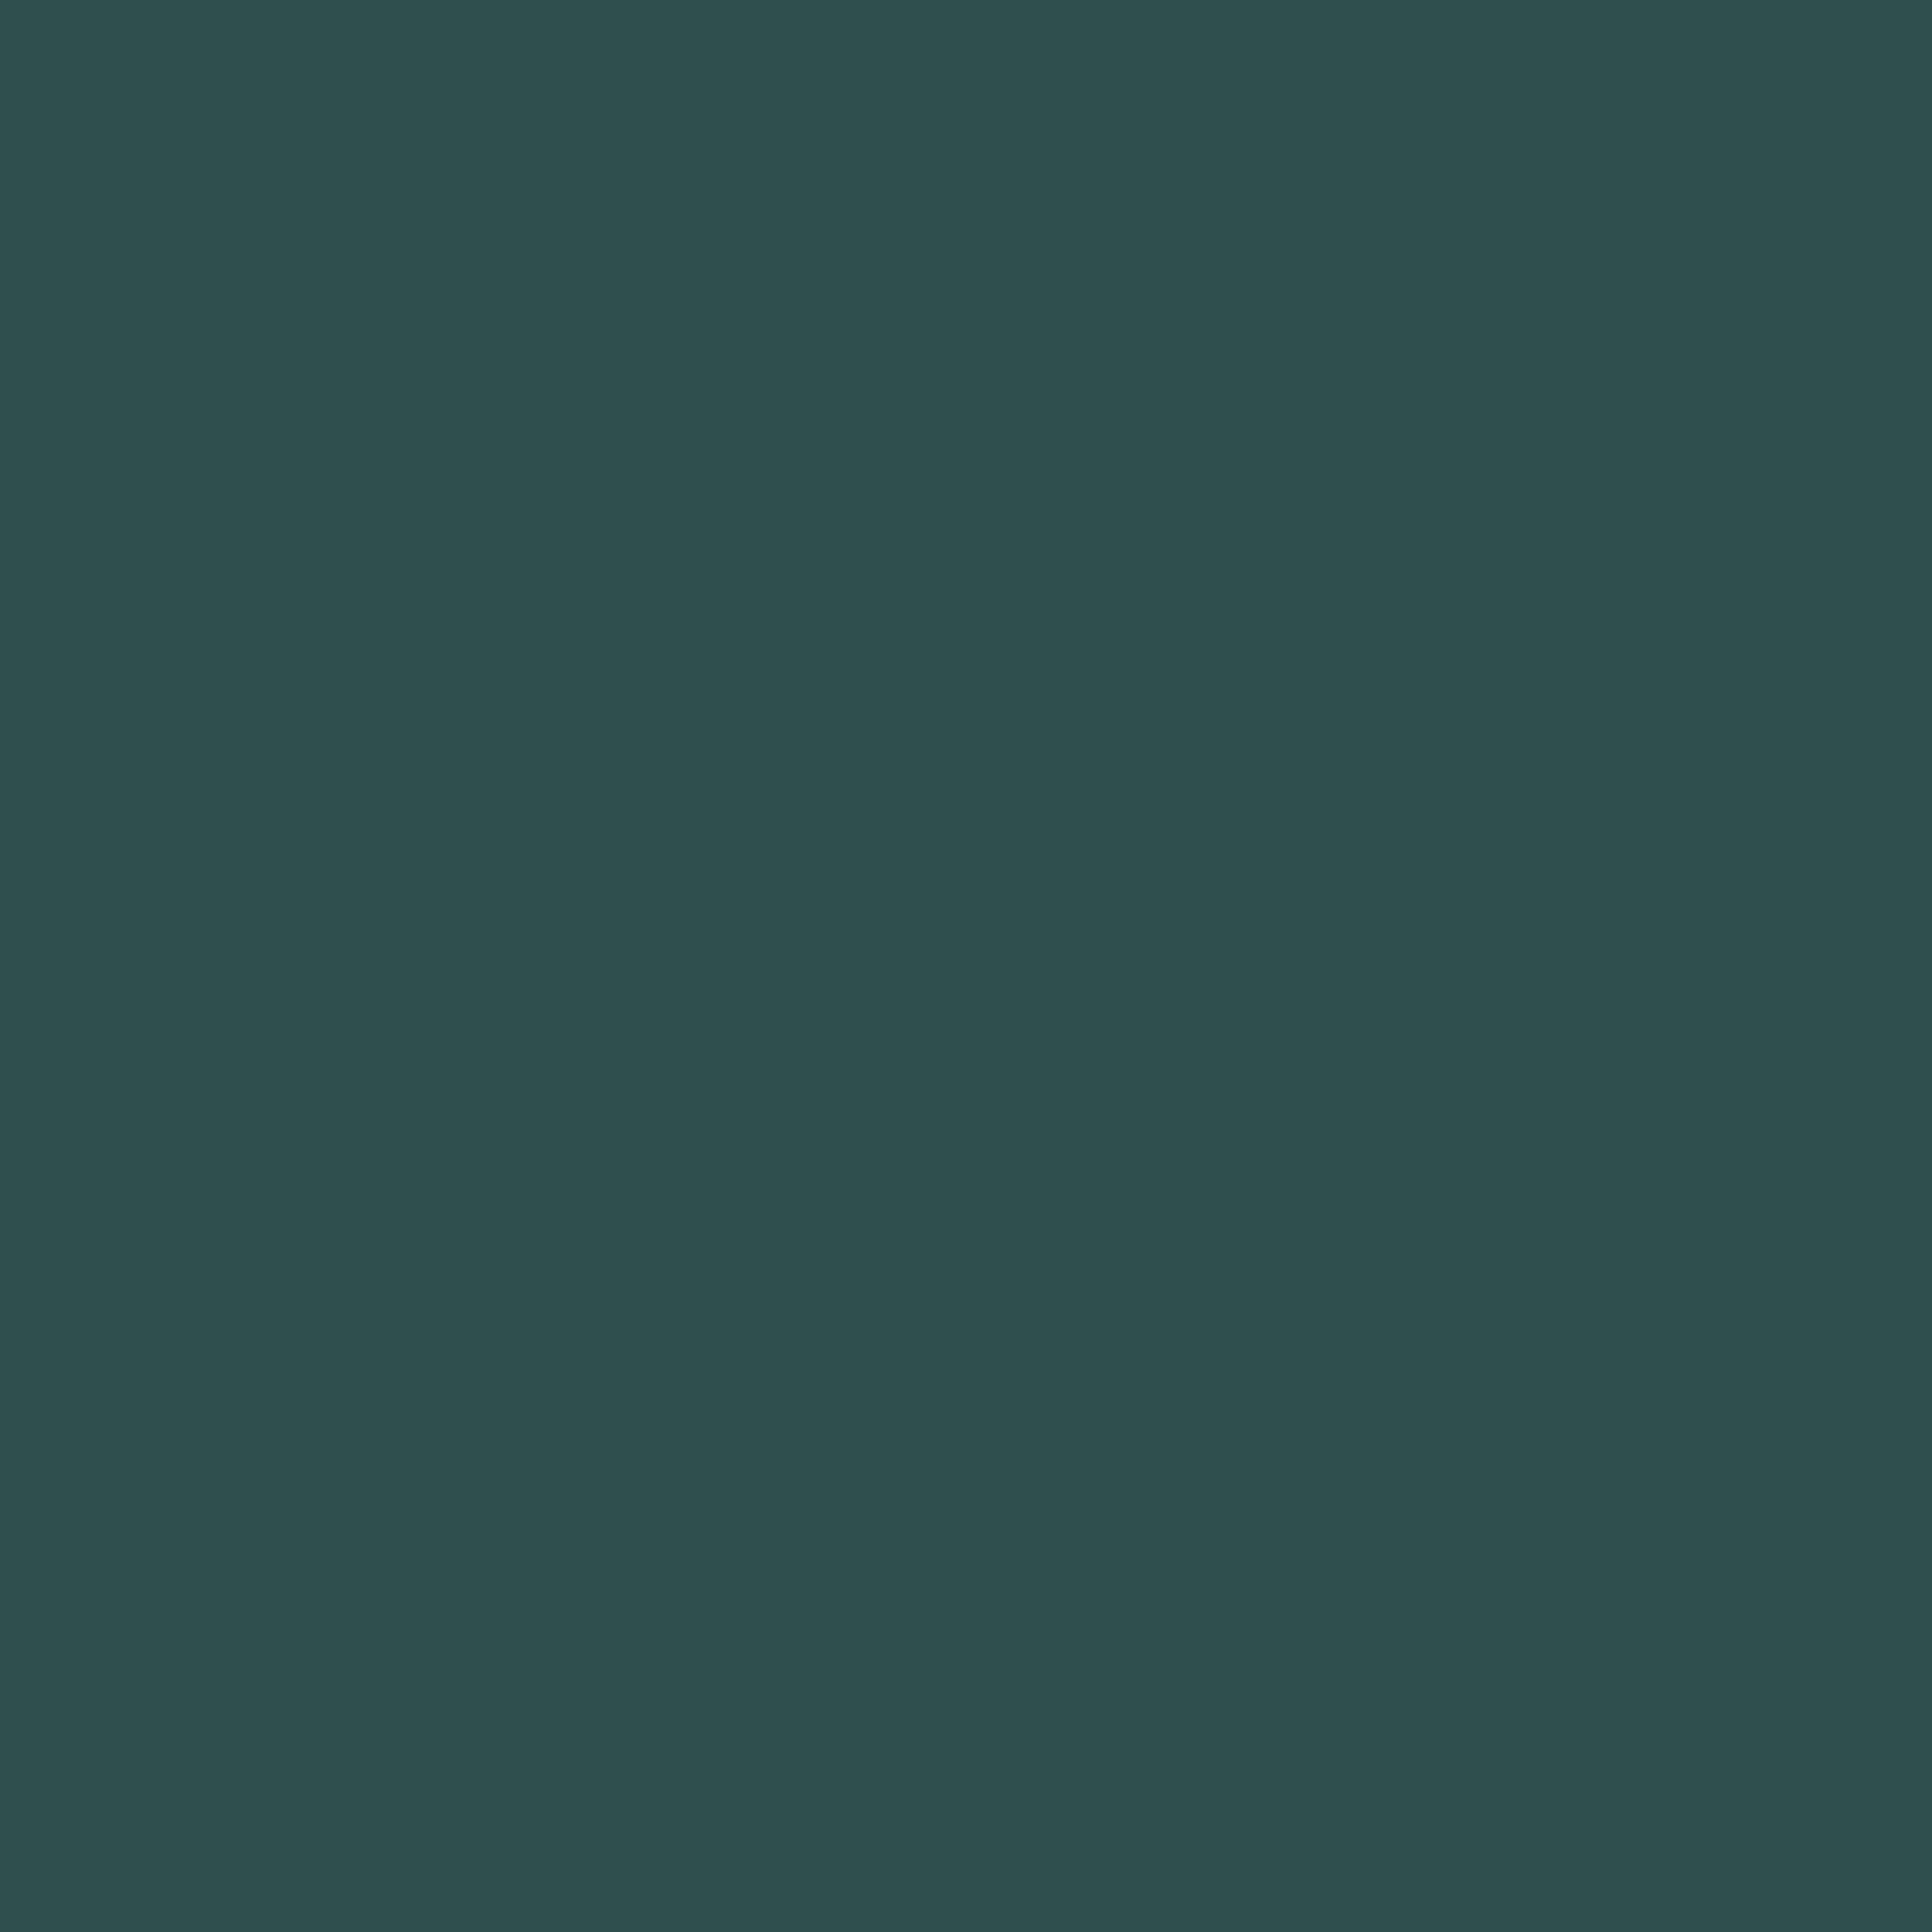 2048x2048 Dark Slate Gray Solid Color Background